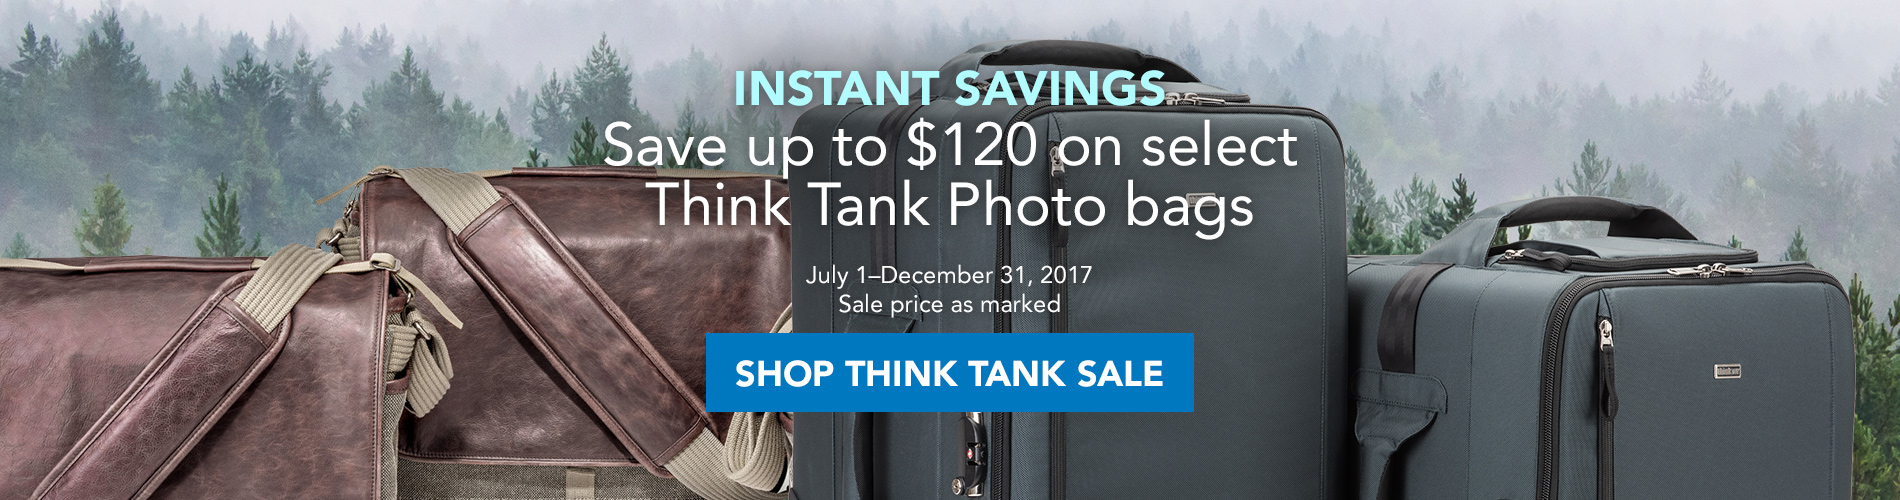 INSTANT SAVINGS! Save up to $120 on select Think Tank Photo bags, July 1–December 31, 2017. Sale price as marked. Shop all Think Tank >